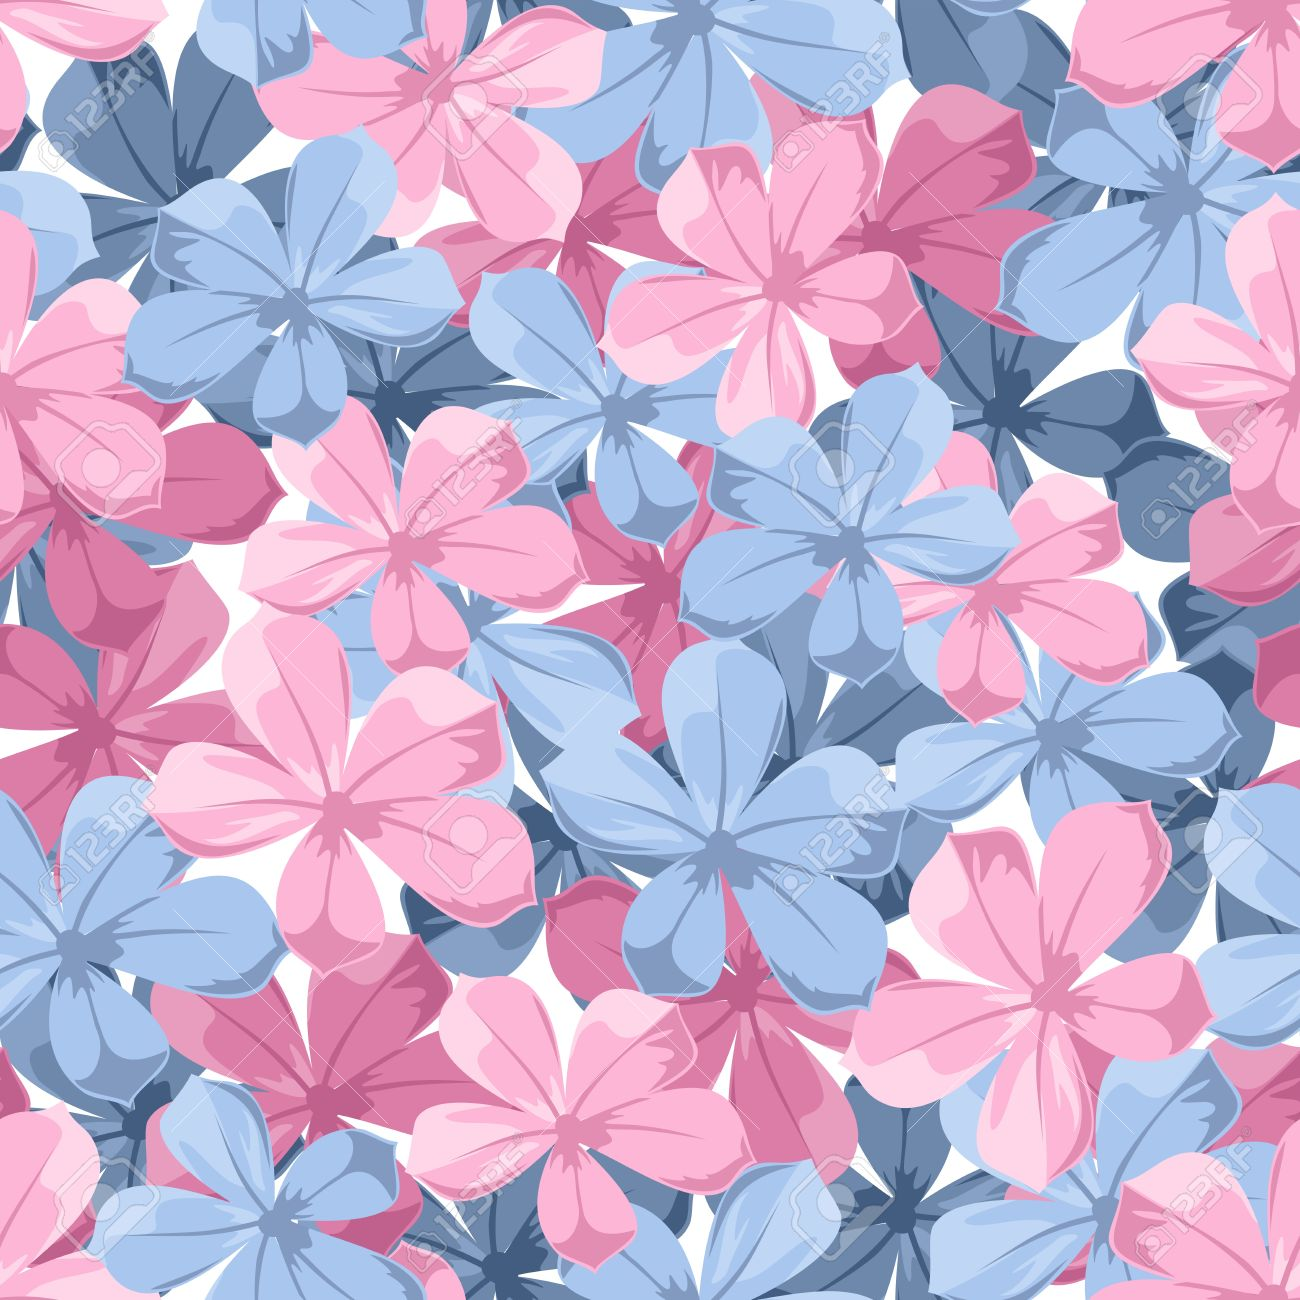 Seamless background with blue and pink flowers vector illustration seamless background with blue and pink flowers vector illustration stock vector 20960707 mightylinksfo